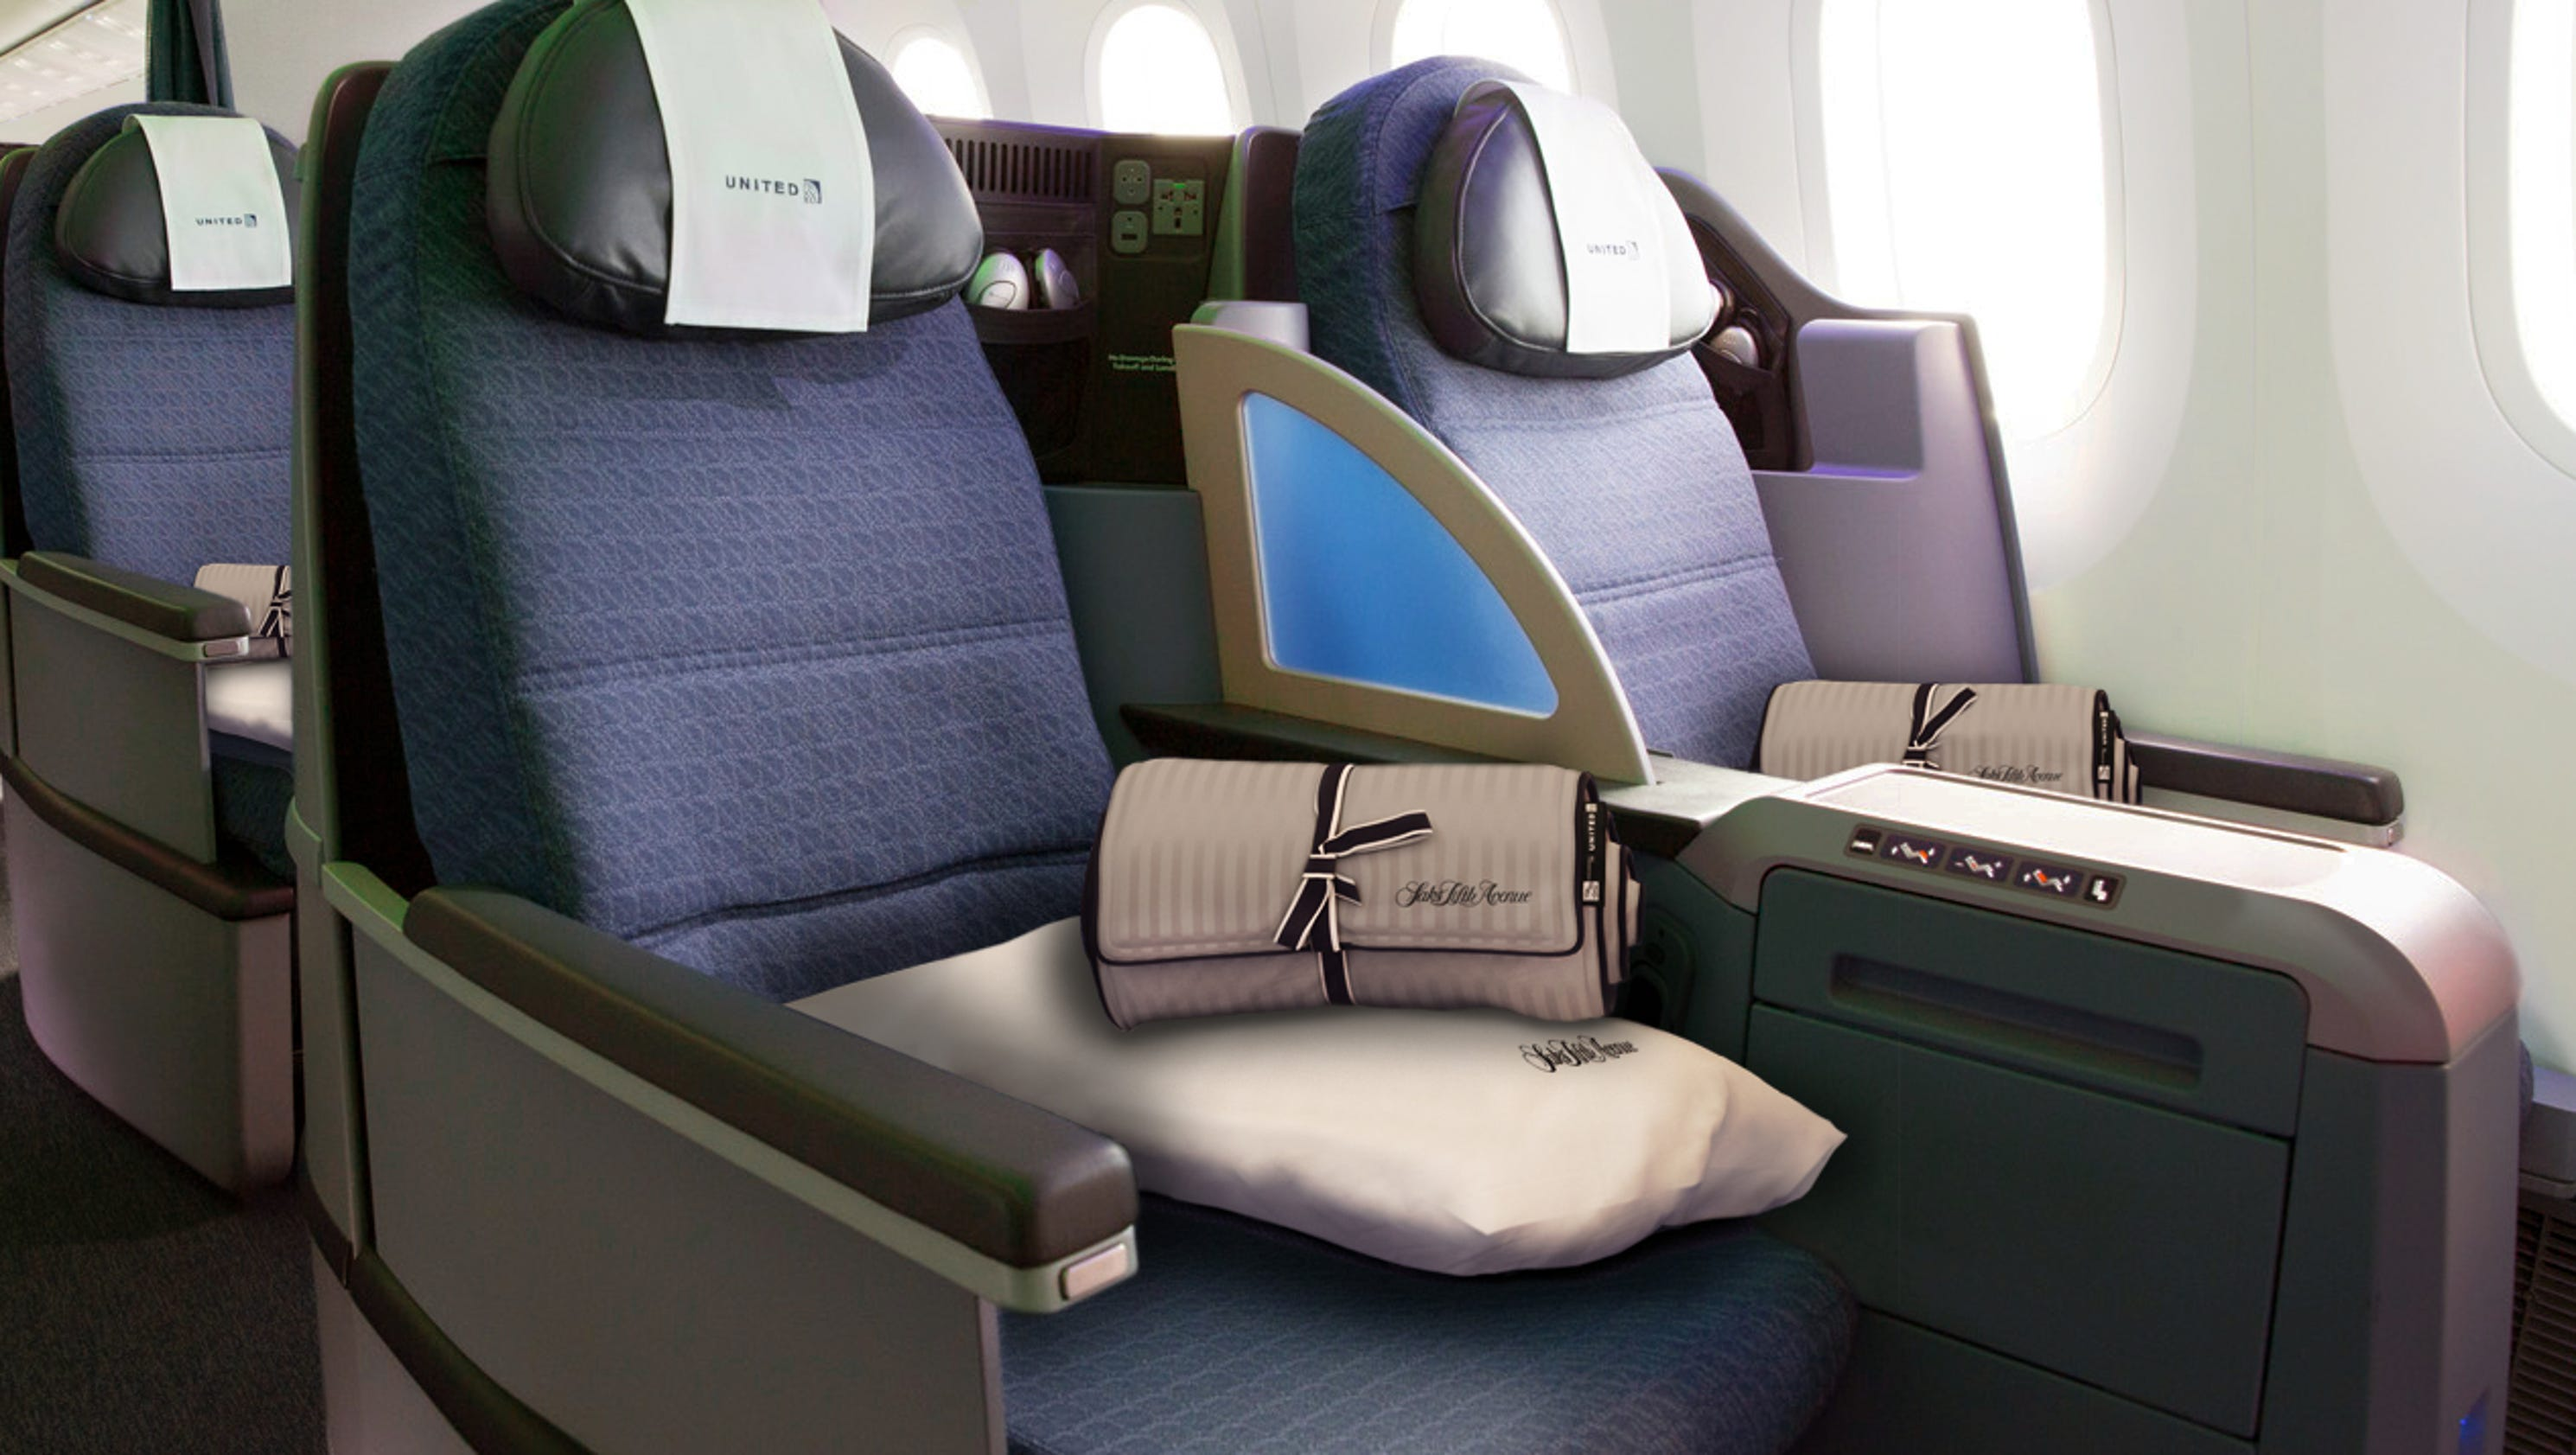 United Airlines Flies These Lie Flat Seats On Three